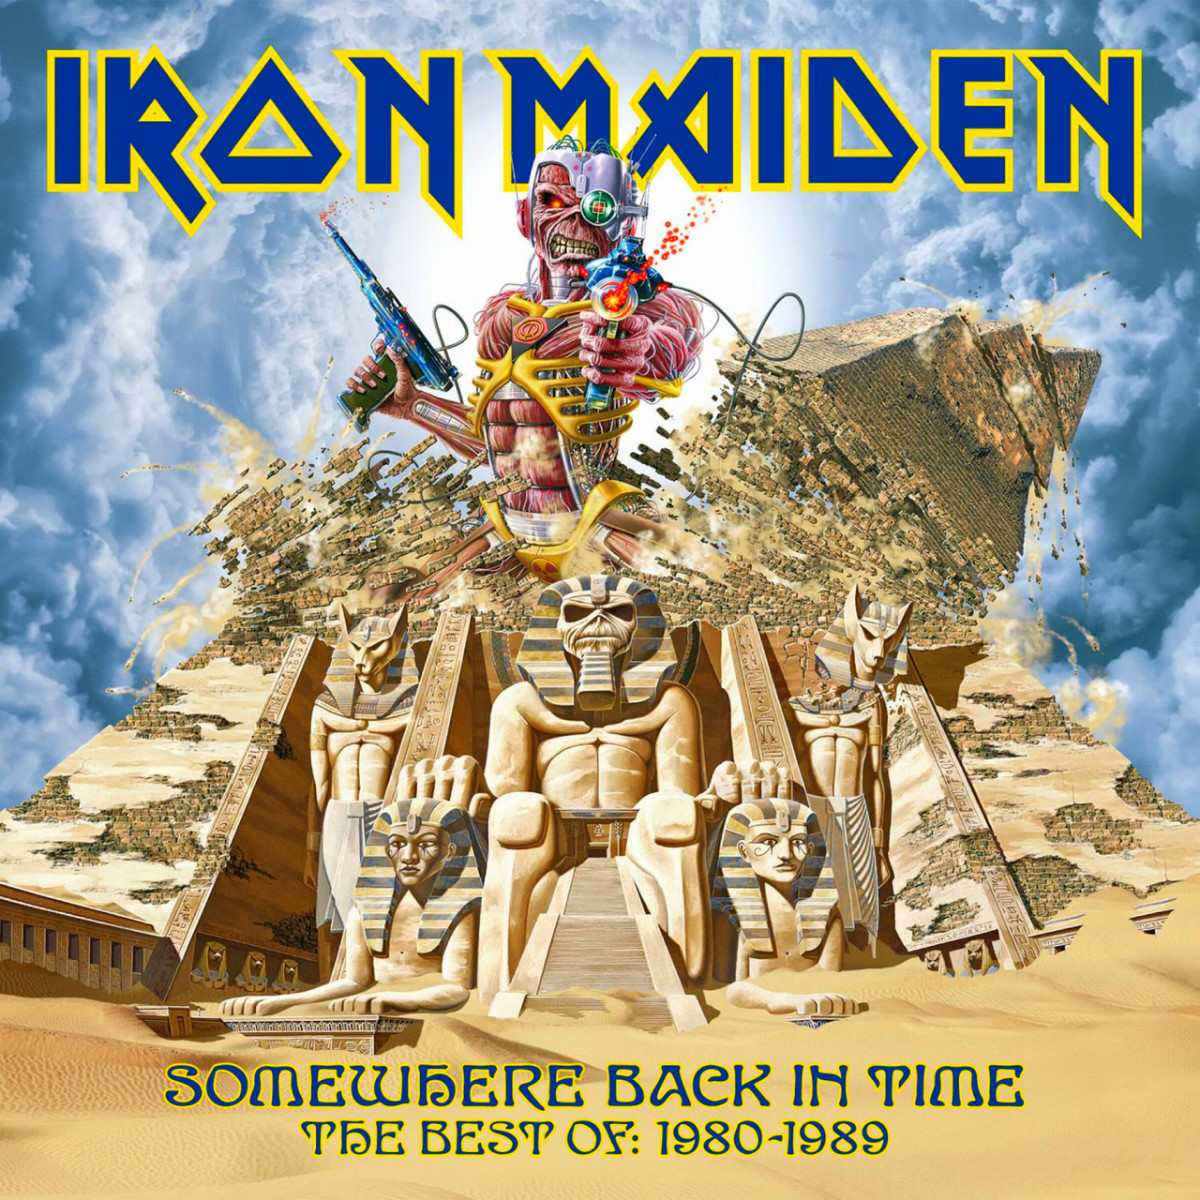 IRON MAIDEN - Somewhere Back In Time: The Best Of 1980-1989 cover